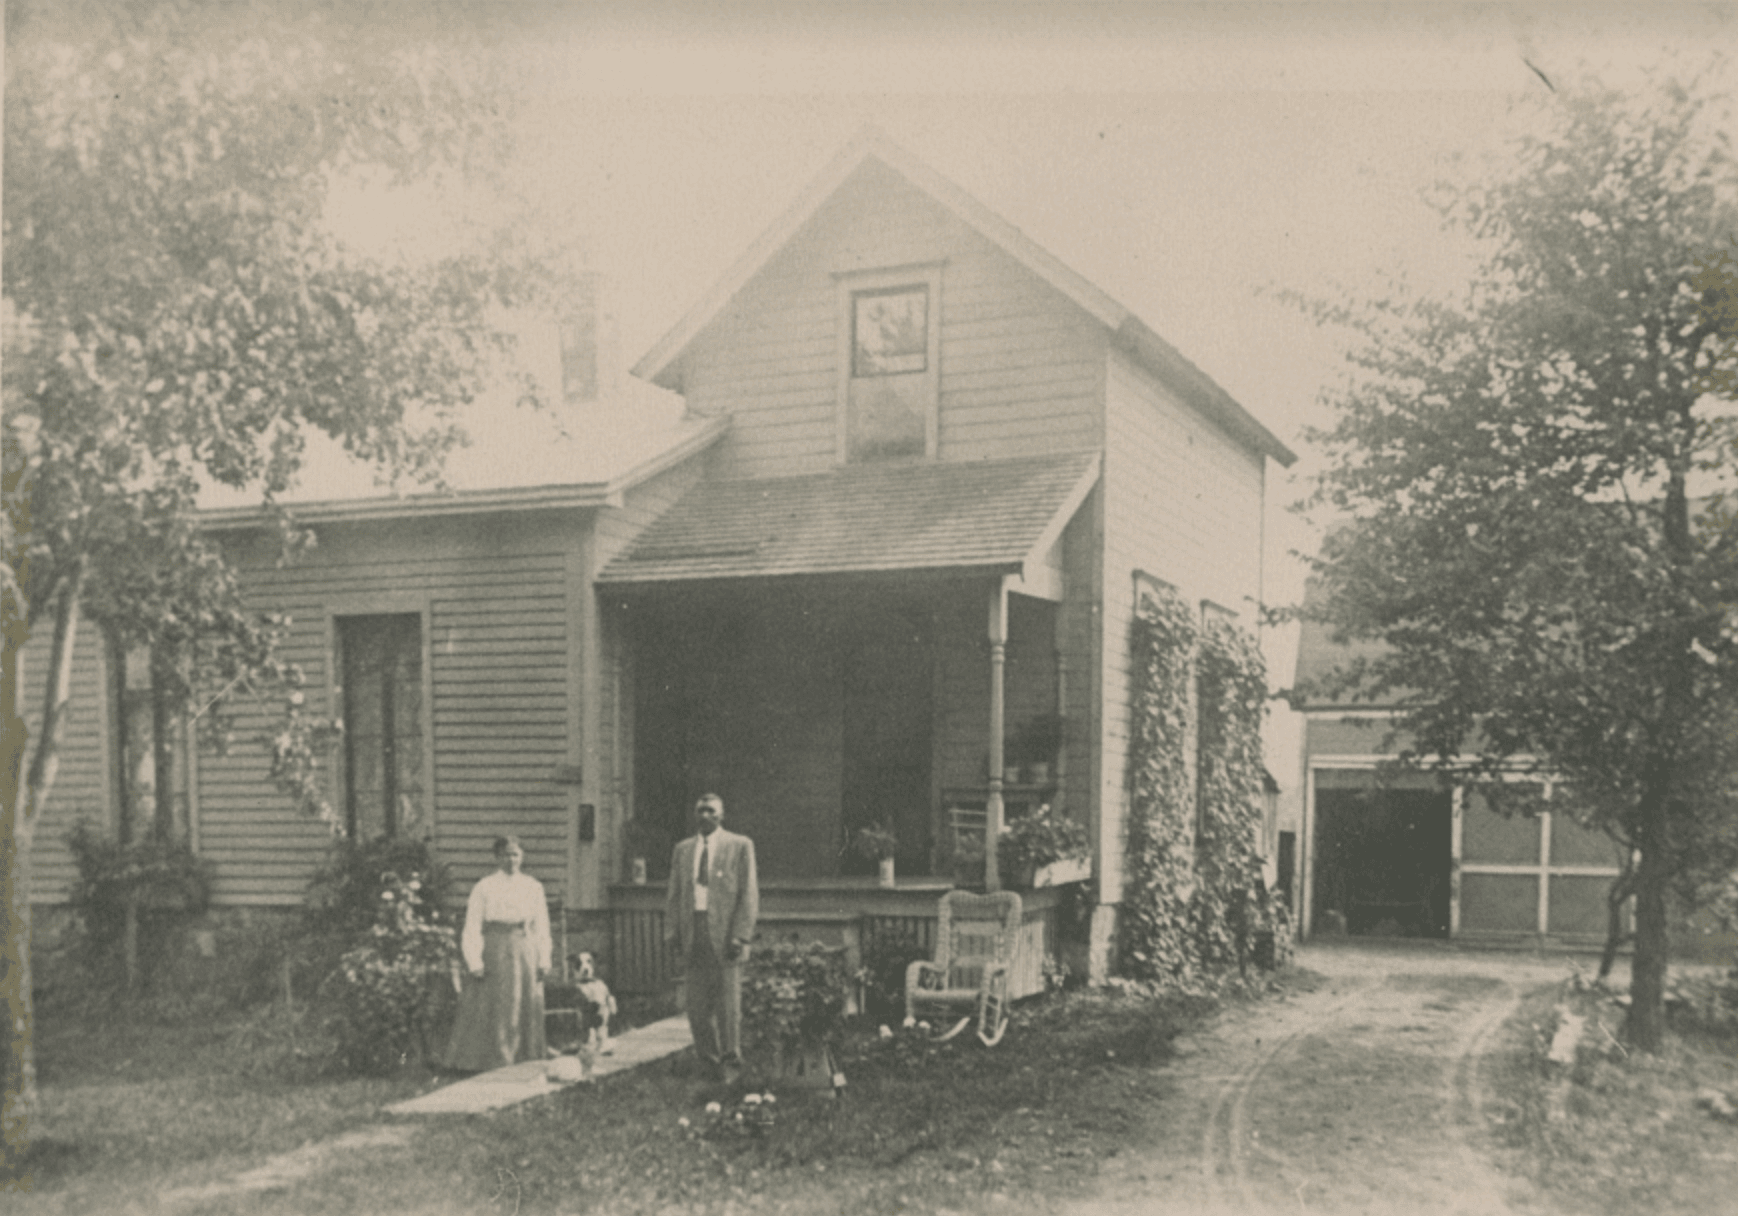 Prince family poses in front of their farm on W. Prospect Street in 1937